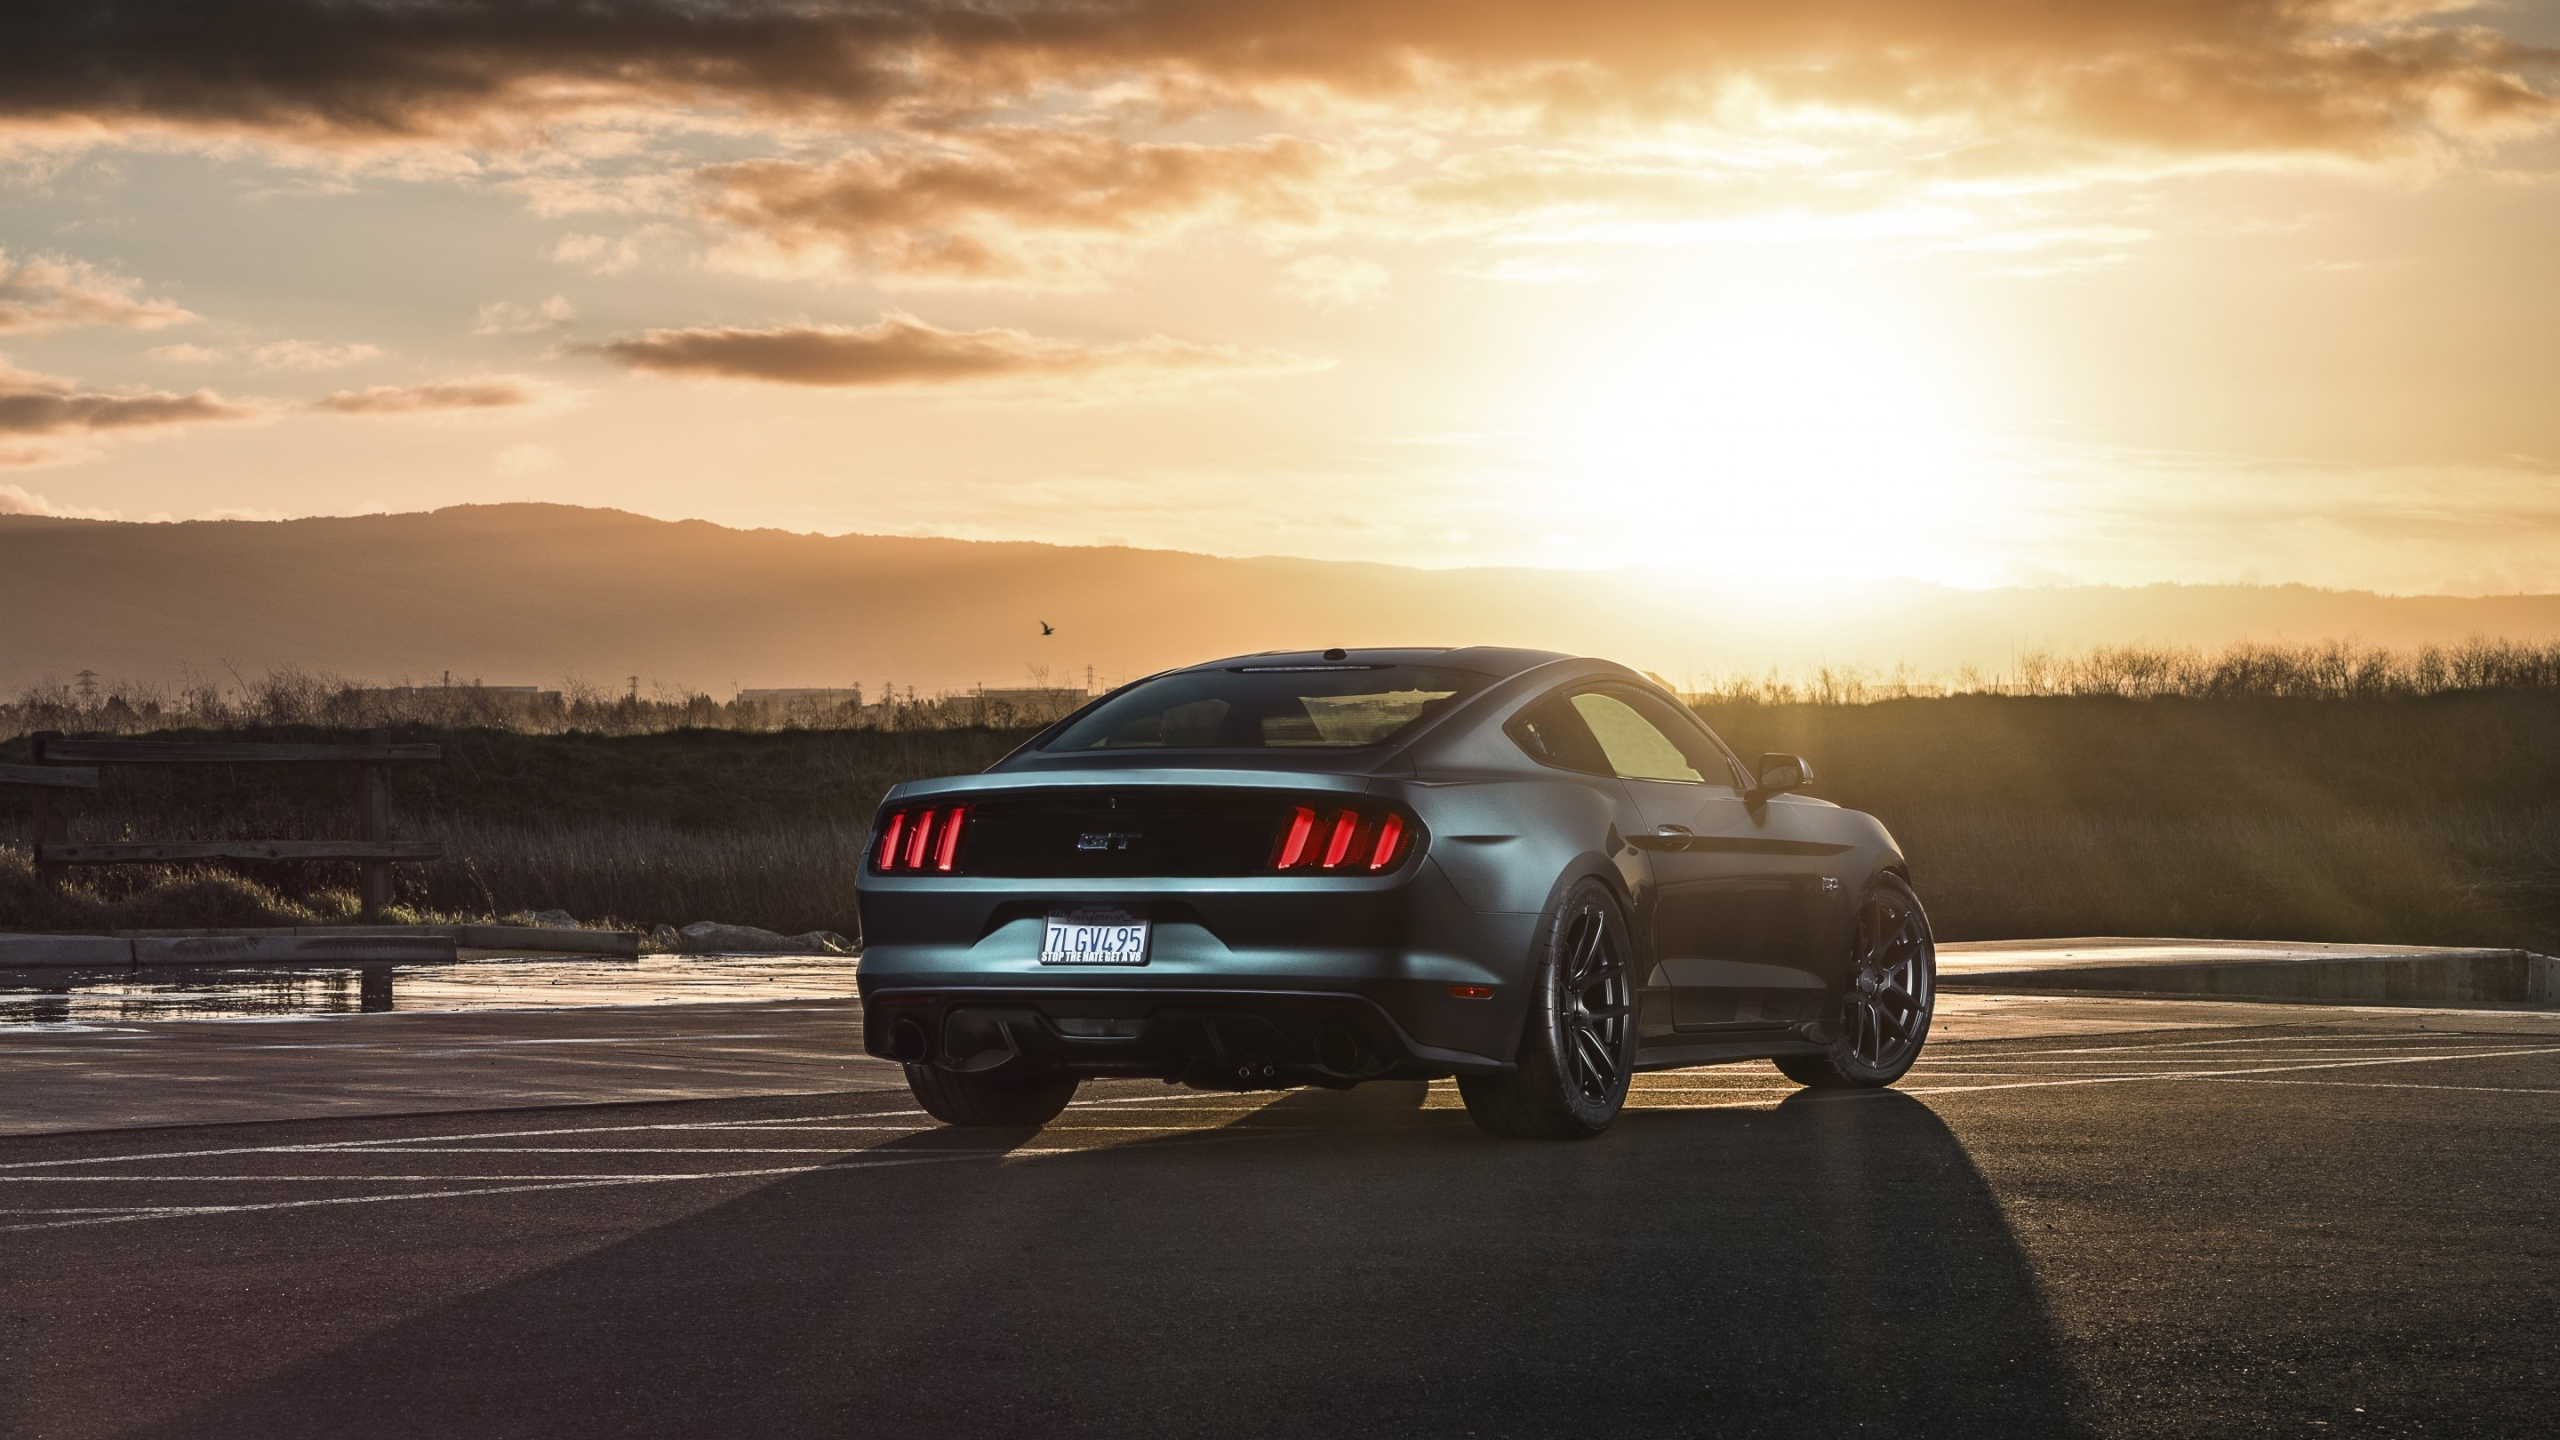 2560x1440 Ford Mustang 2015 Gt 1440p Resolution Wallpaper Hd Cars 4k Wallpapers Images Photos And Background Wallpapers Den